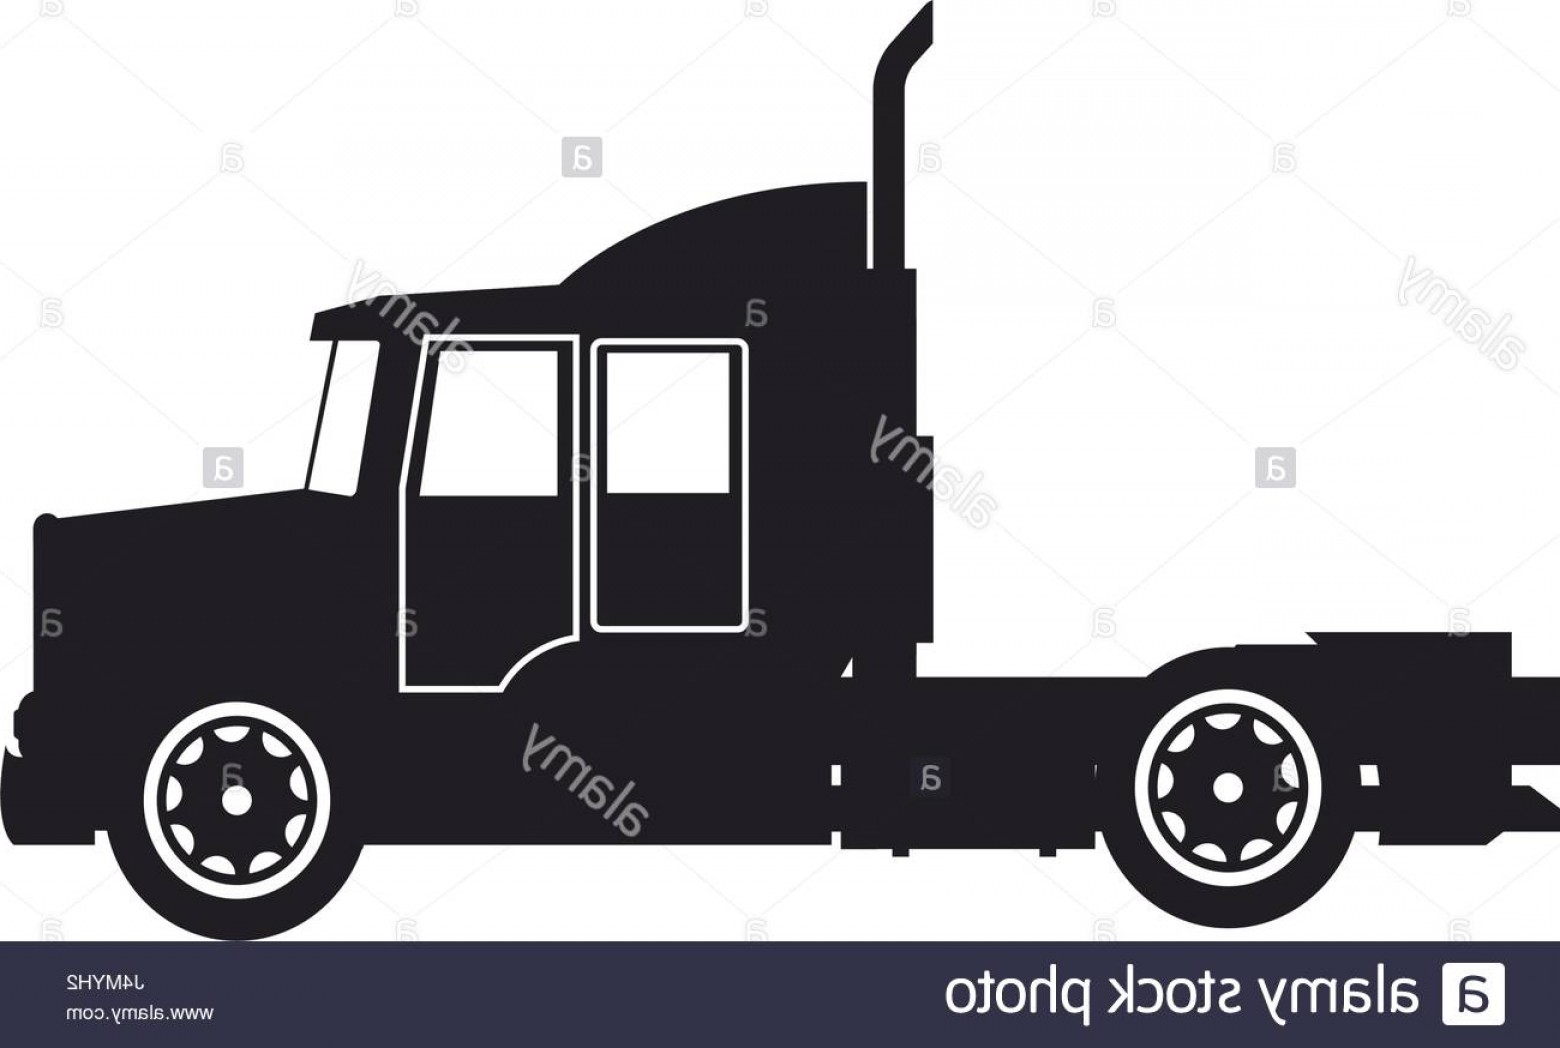 Vector Truck And Trailer Hauling: Stock Photo Semi Trailer Truck Transportation Isolated On White Background